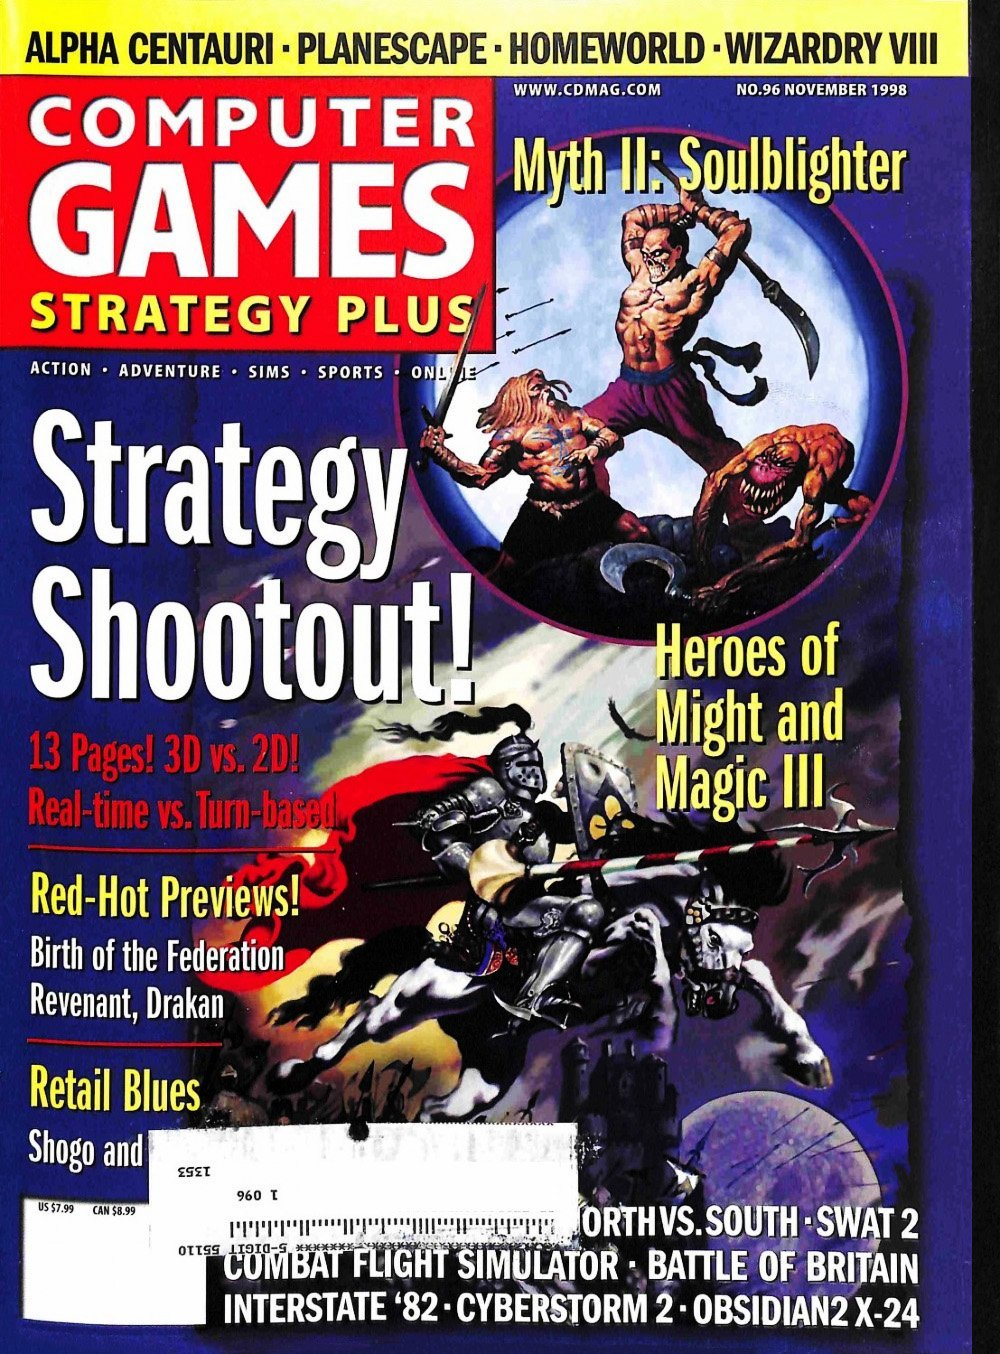 Computer Games Strategy Plus Issue 096 (November 1998)